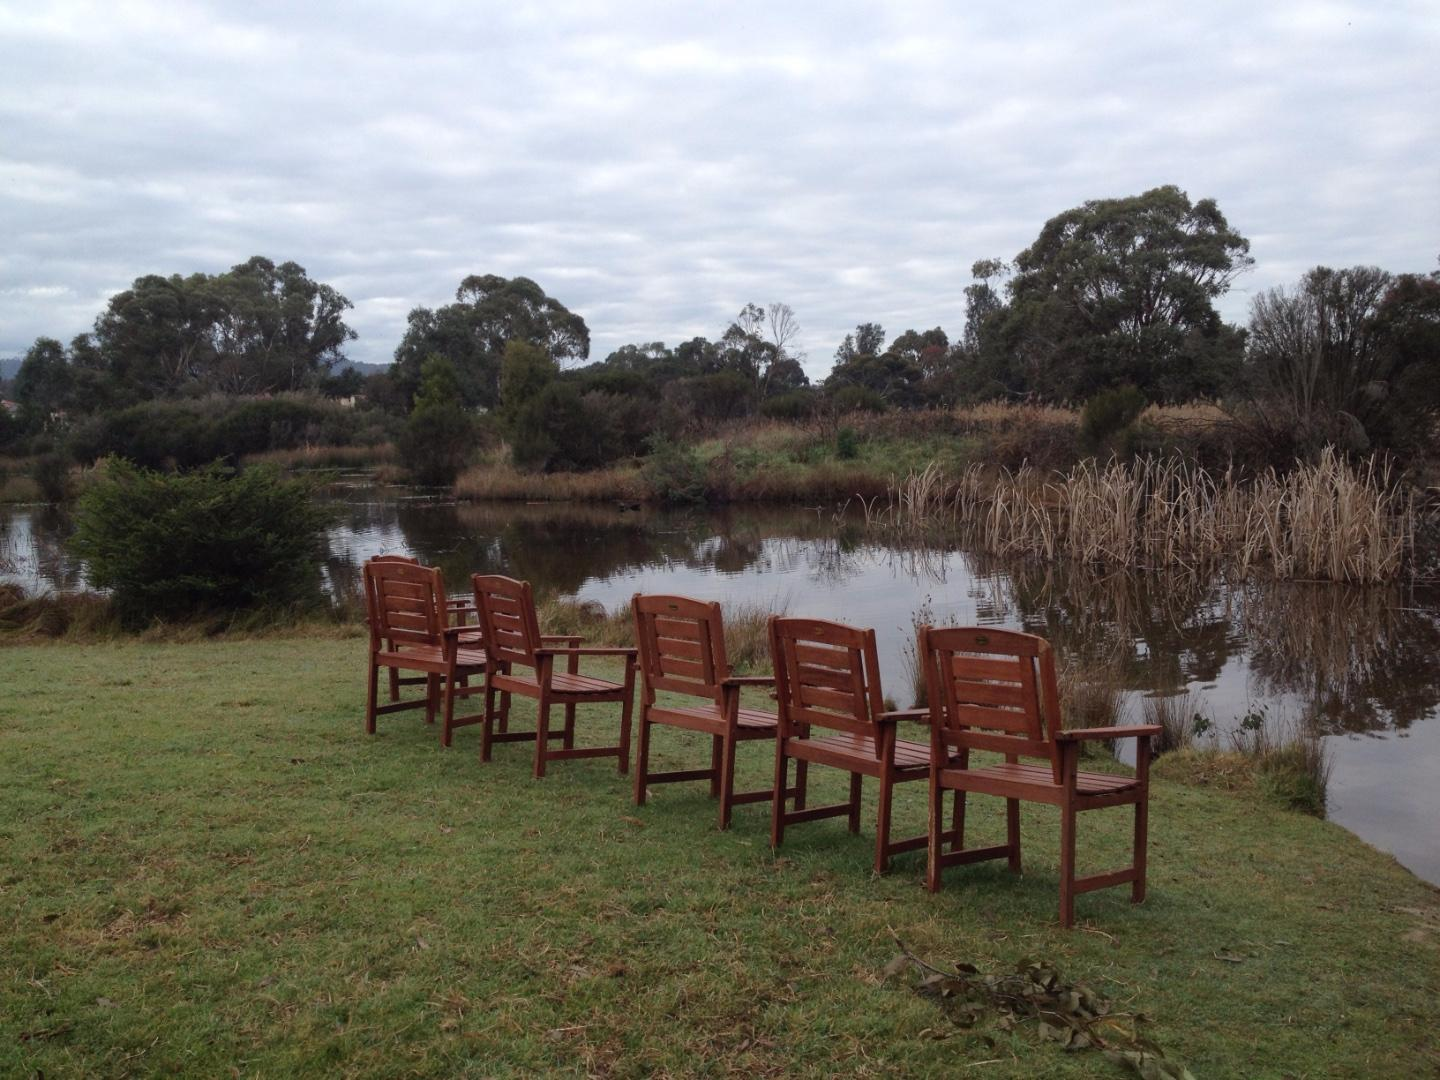 Lake full and mystery chairs appeared